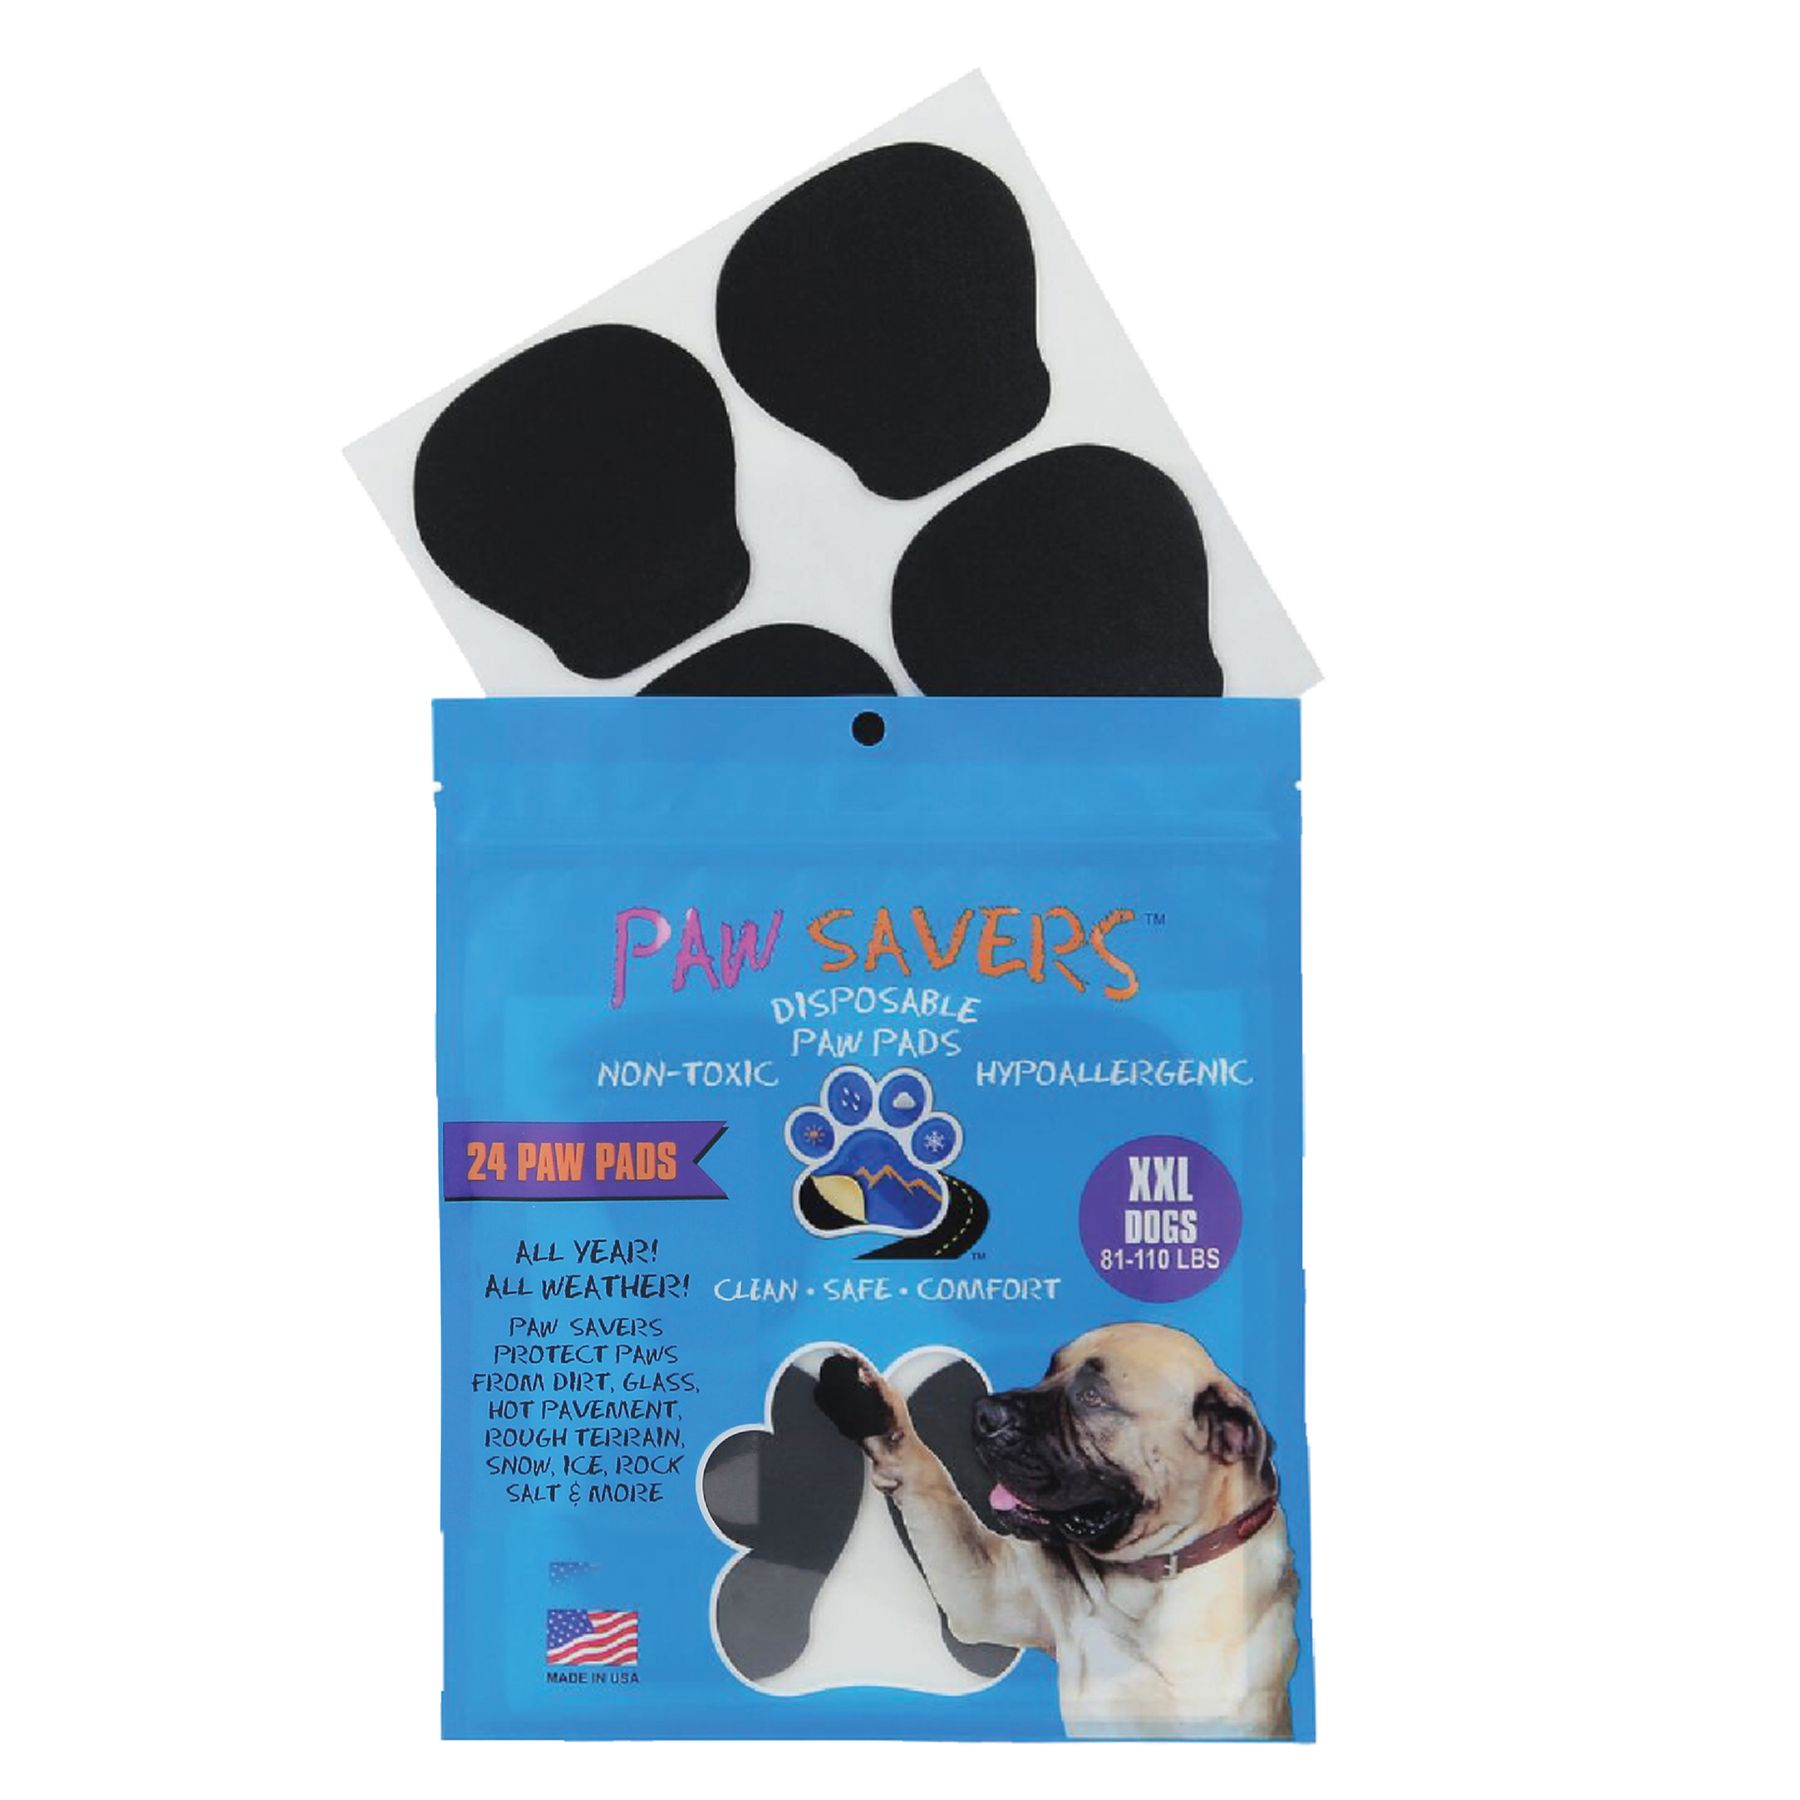 Paw Savers Disposable Paw Pads Size 2x Large